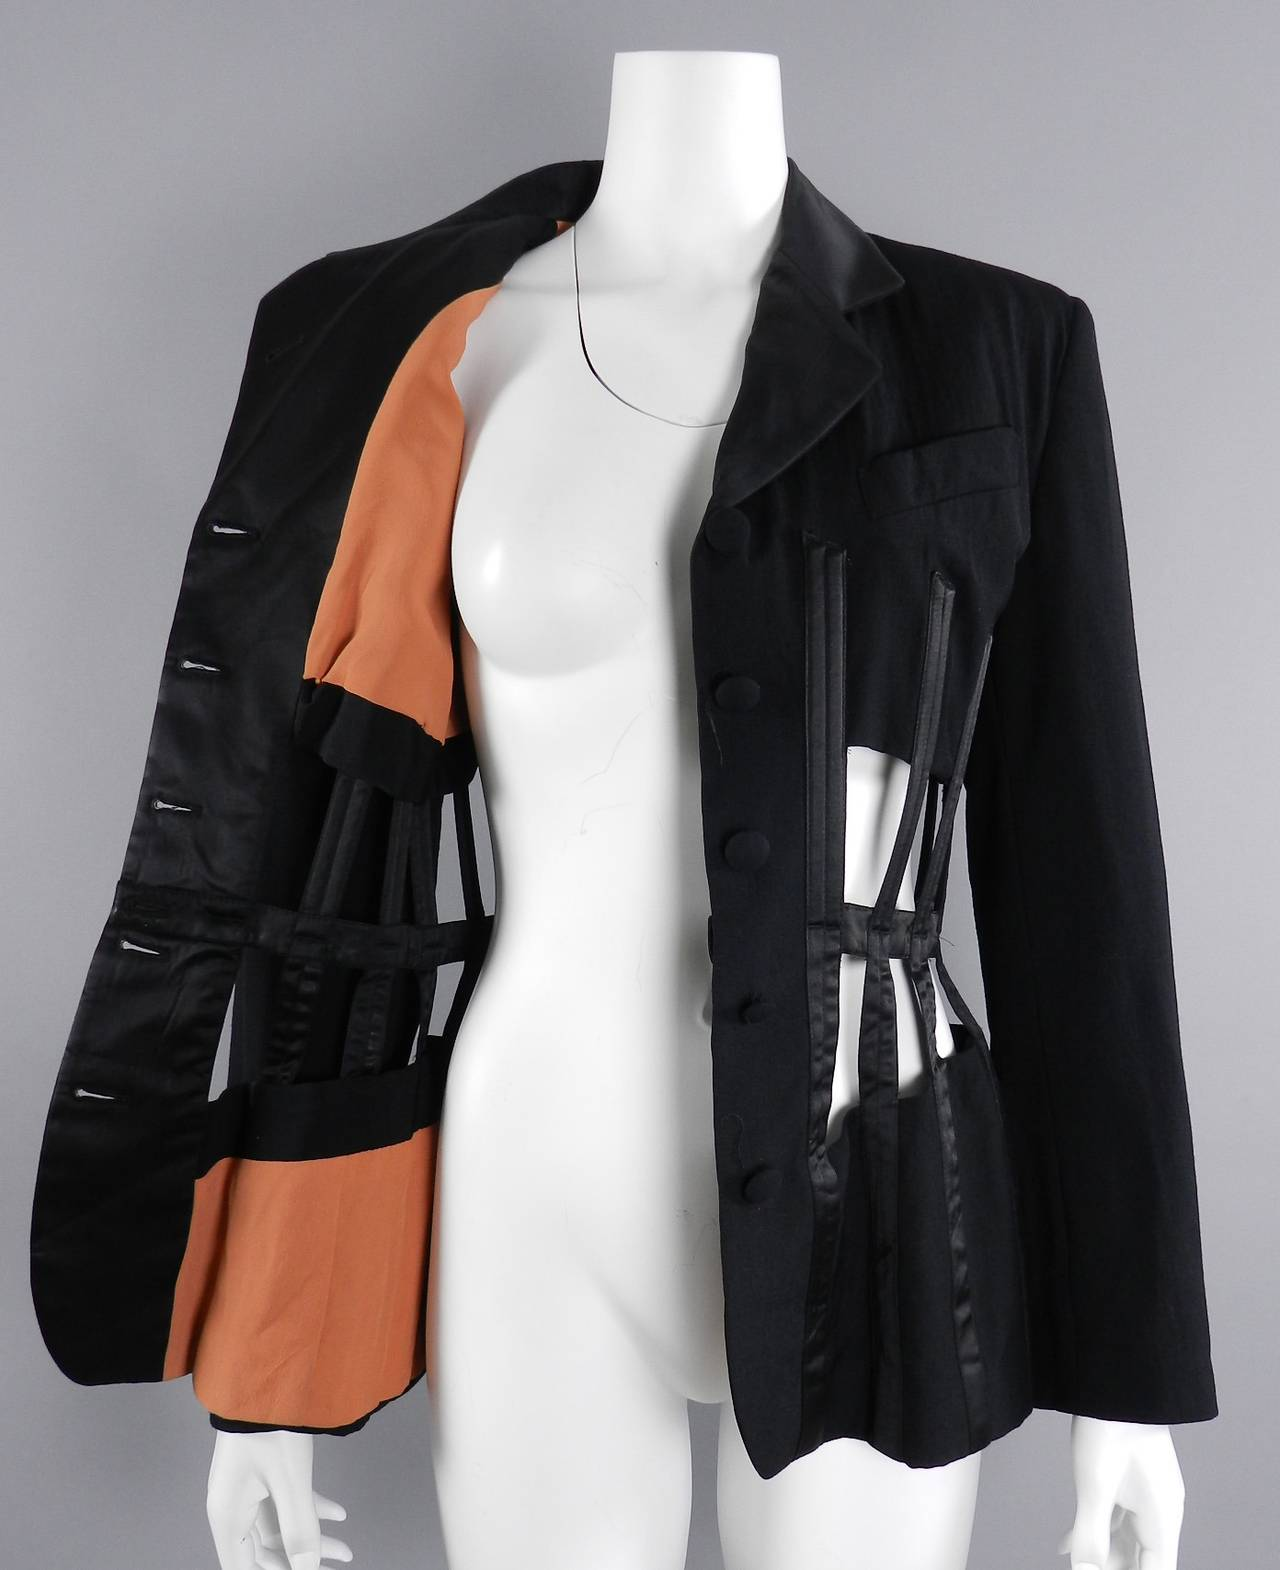 Jean Paul Gaultier Iconic 1989 Black Corset Cage Jacket In Excellent Condition For Sale In Toronto, CA